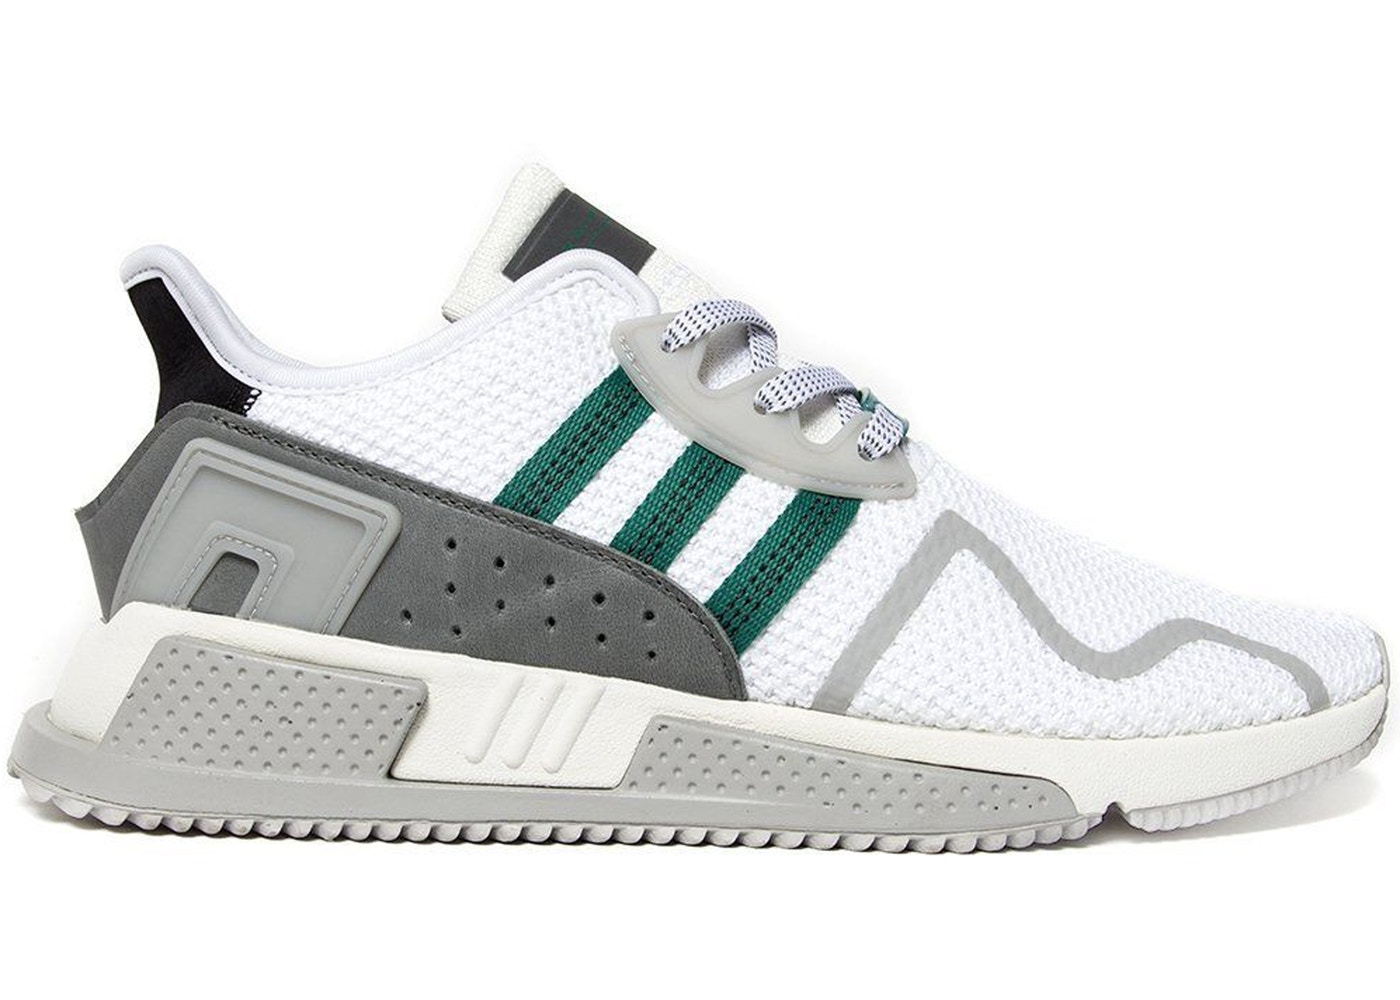 アディダス ADIDAS ノース スニーカー 【 EQT CUSHION ADV NORTH AMERICA GREEN CORE BLACK CHALK WHITE 】 メンズ